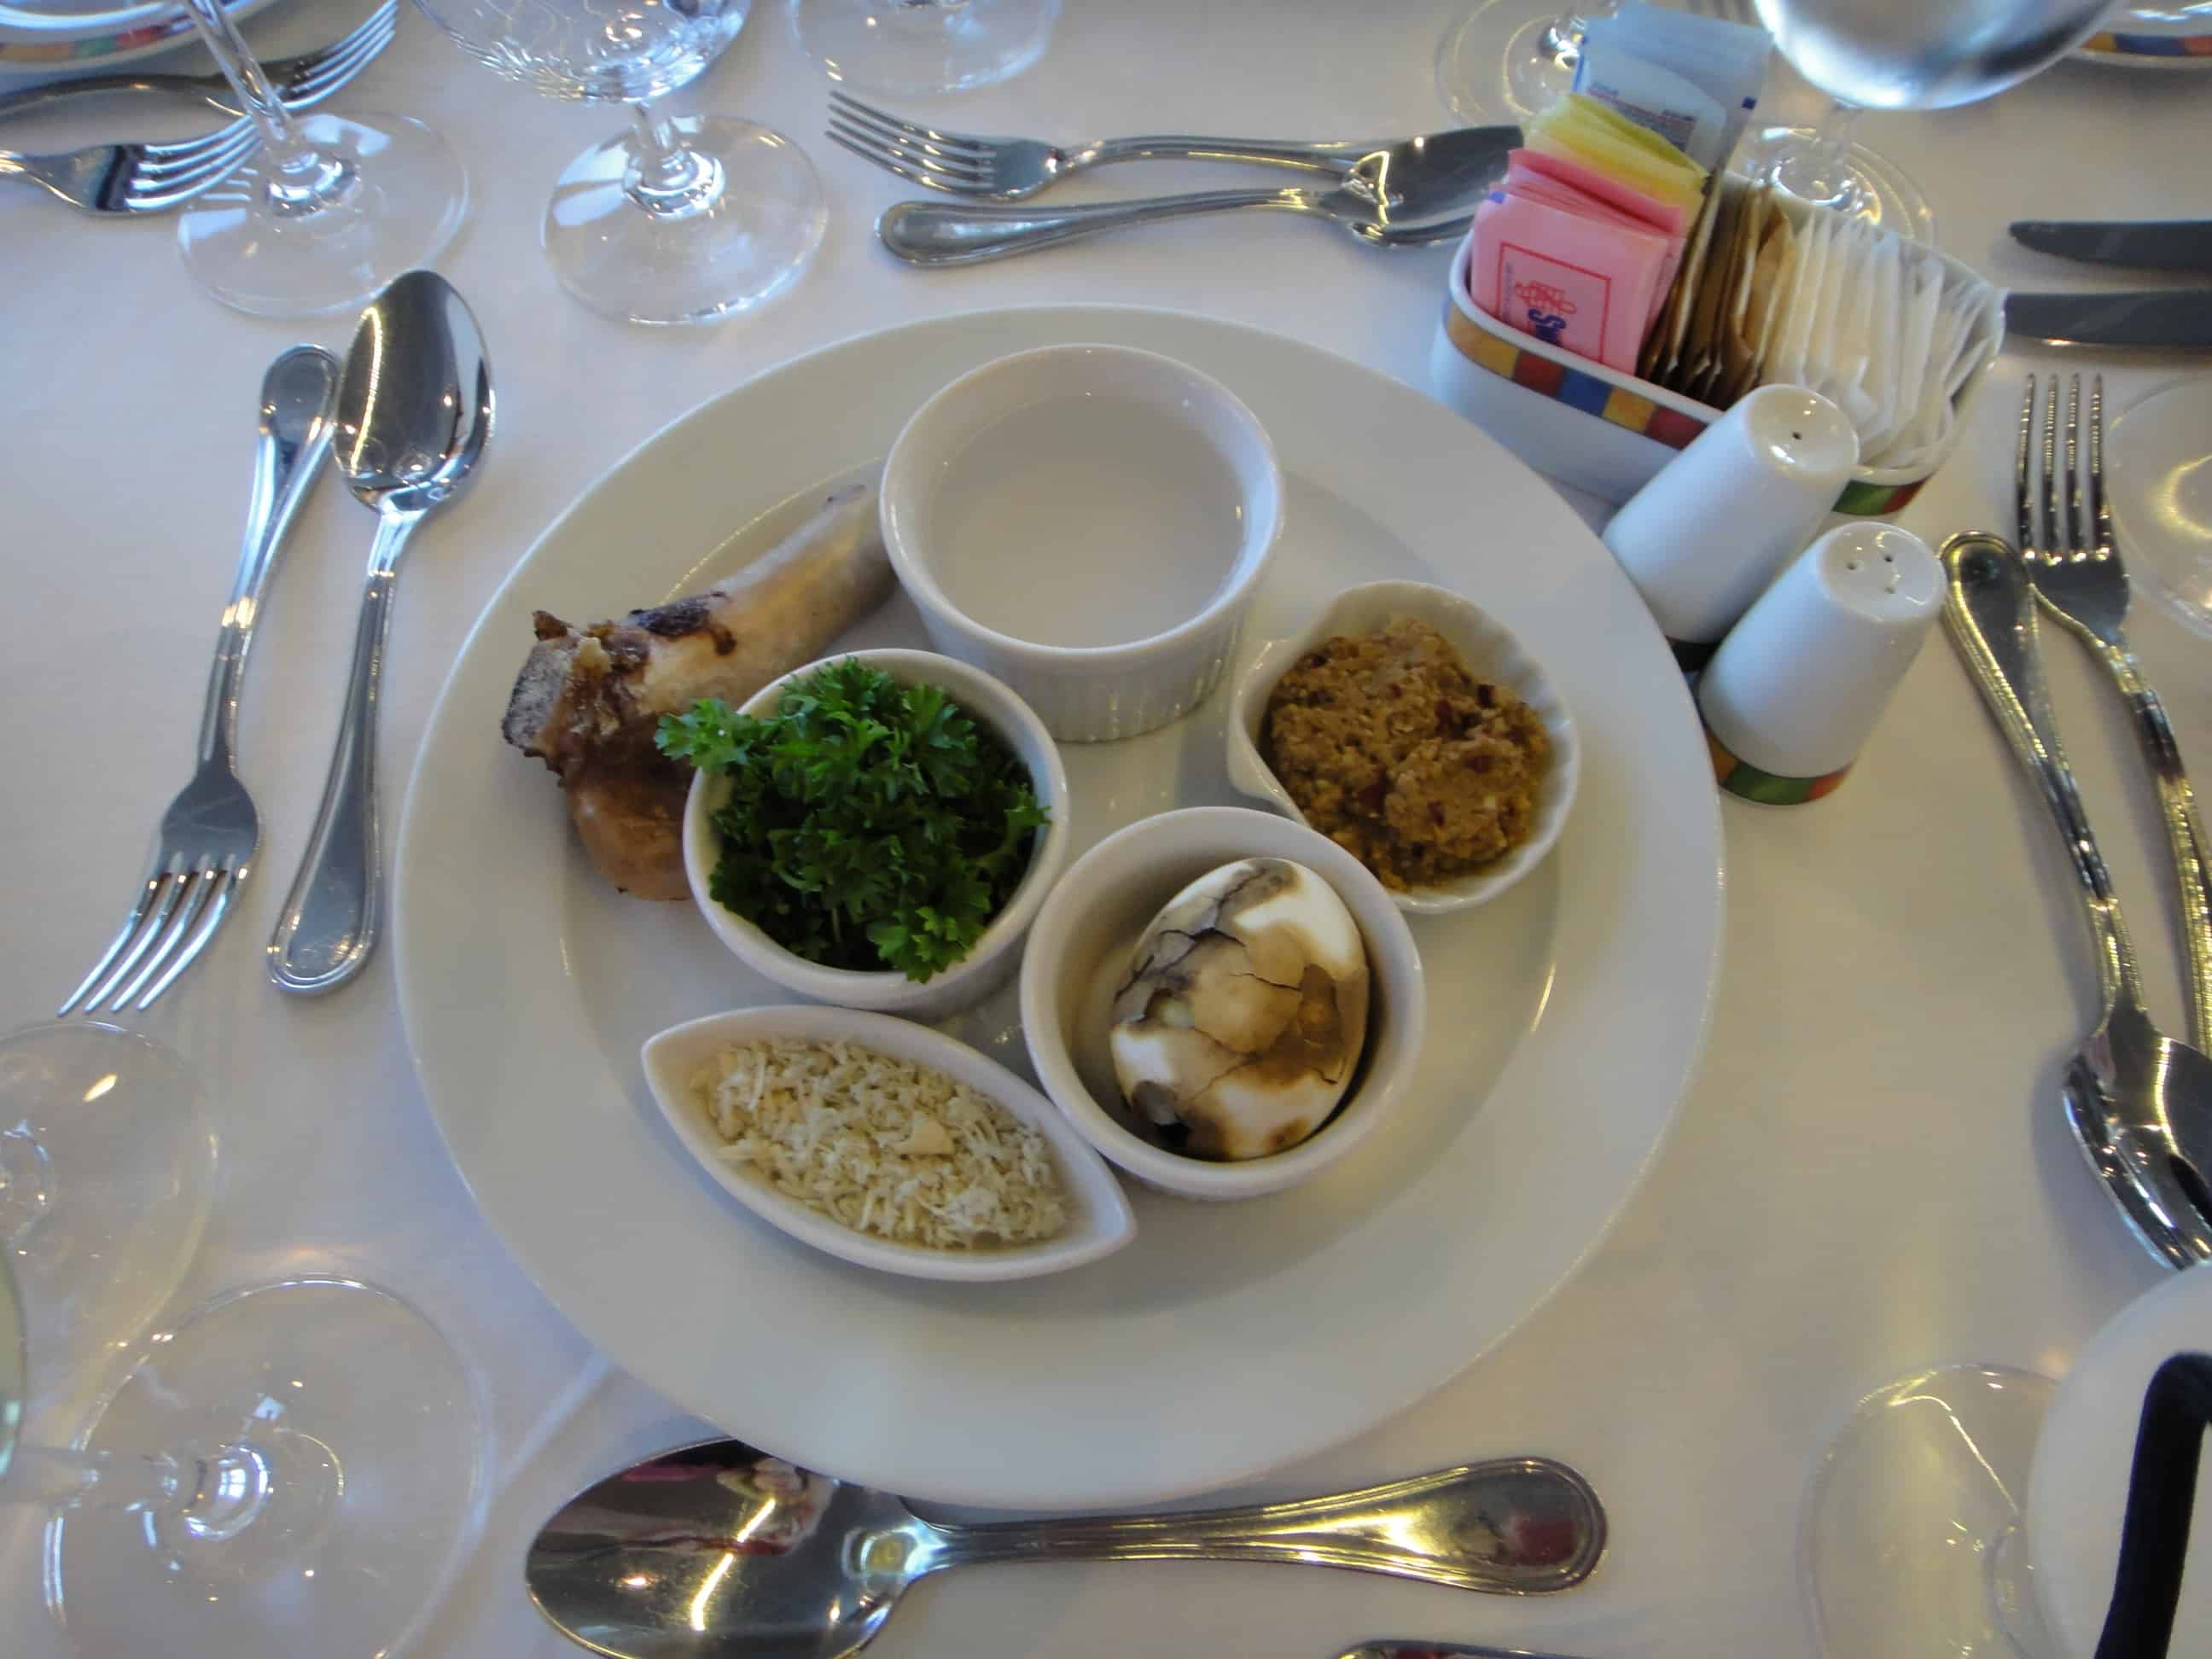 Seder plate at our seder at sea